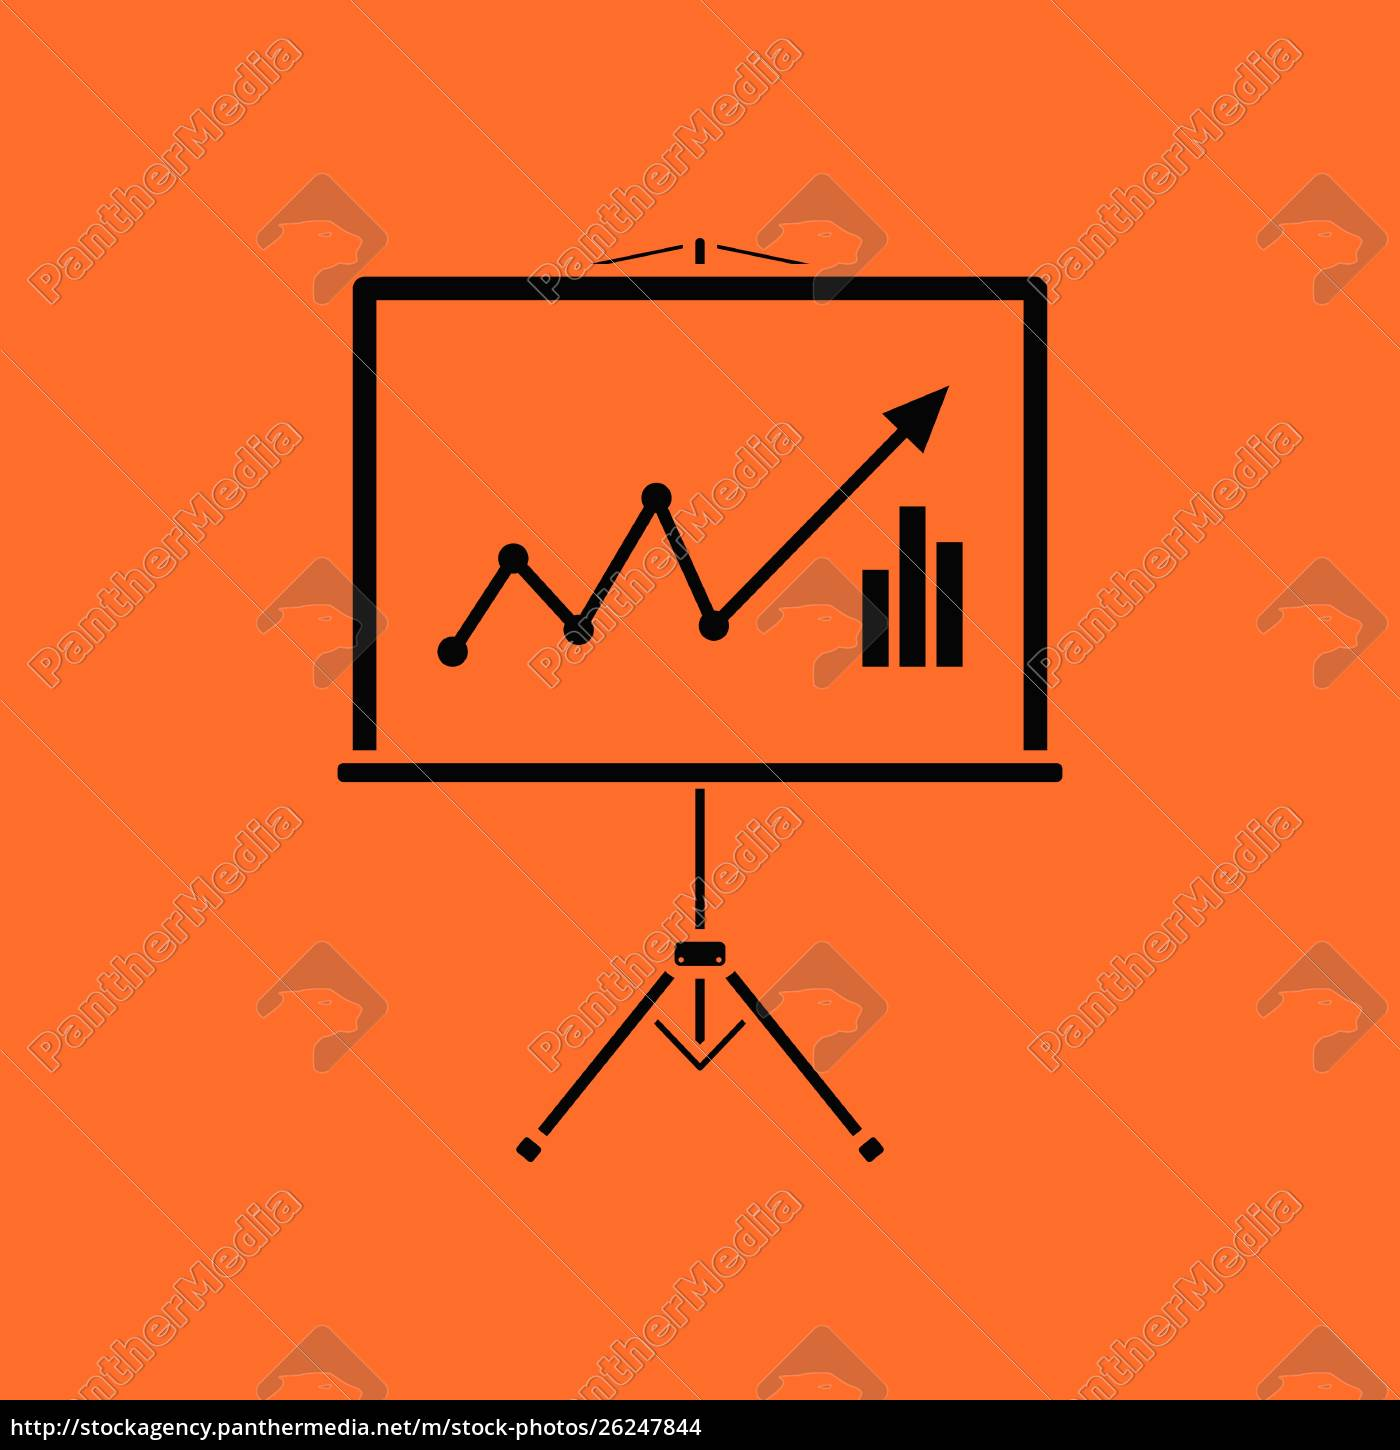 analytics, stand, icon., orange, background, with - 26247844